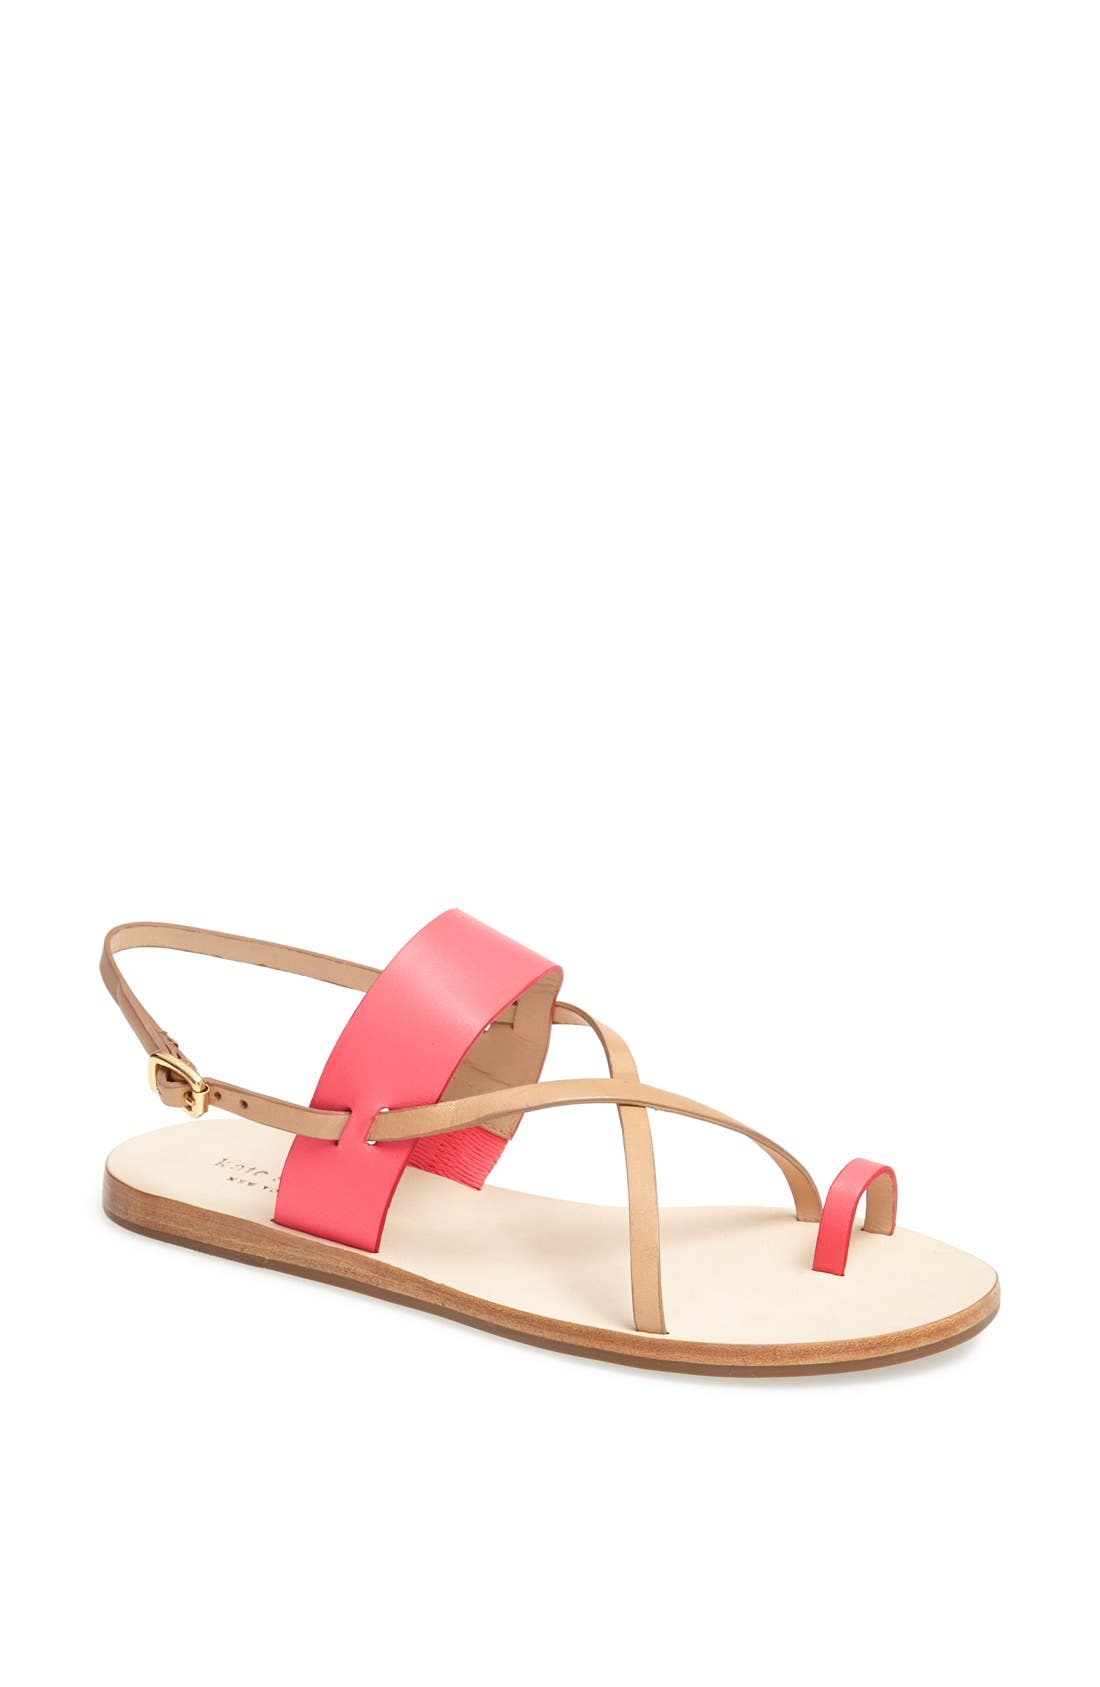 Alternate Image 1 Selected - kate spade new york 'ashley' sandal